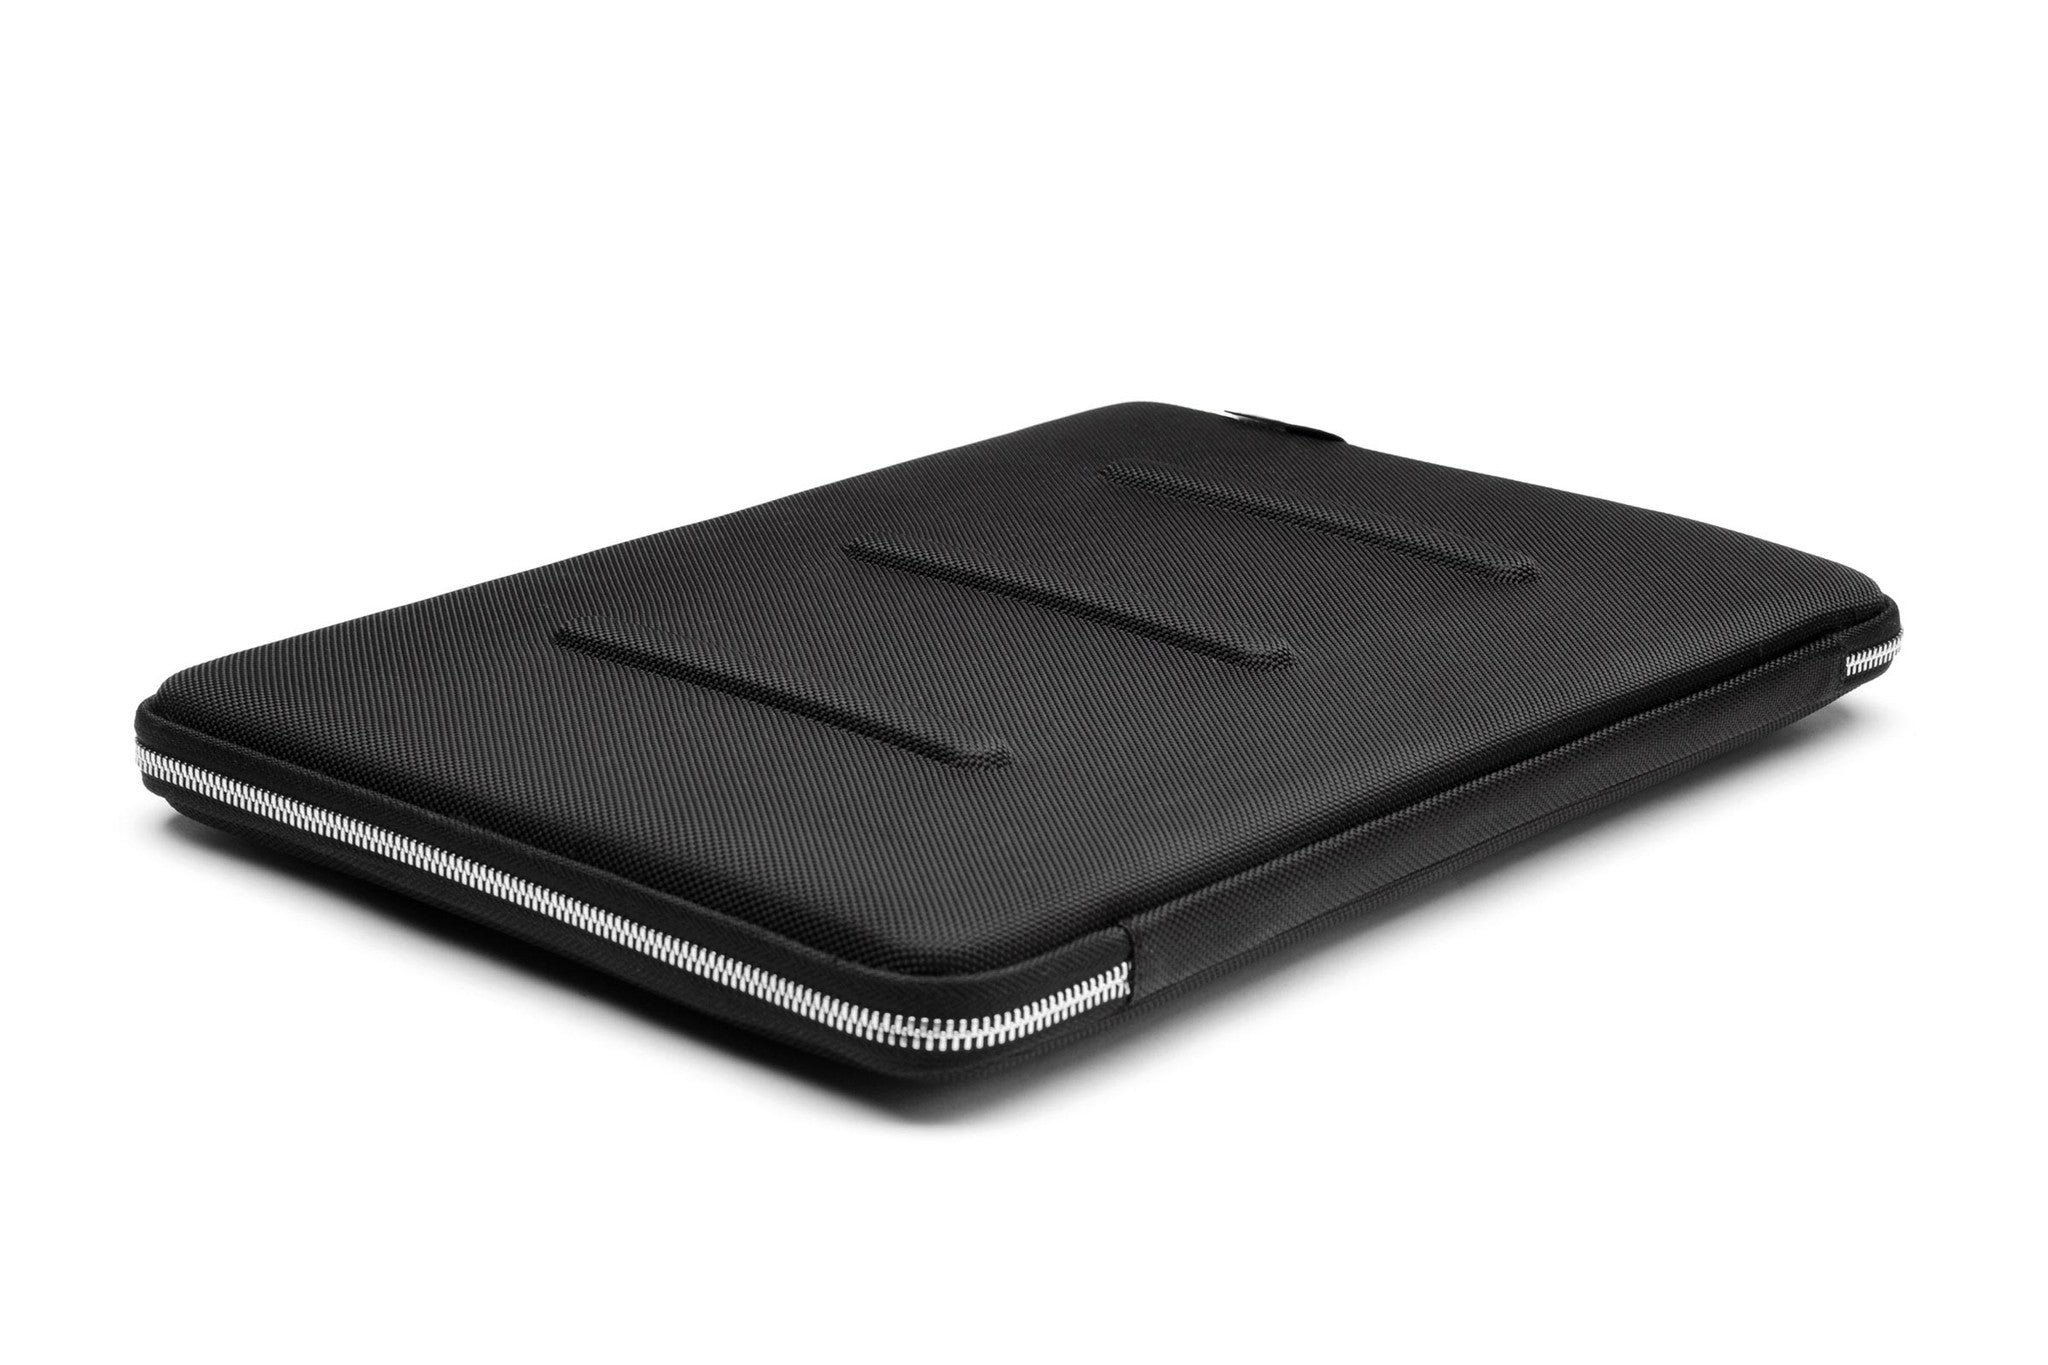 case 15 At case logic we started out providing the best cd cases & dvd cases around with so many electronics today we now offer protection for all devices including laptops, cameras, tablets, ereaders and smartphones.